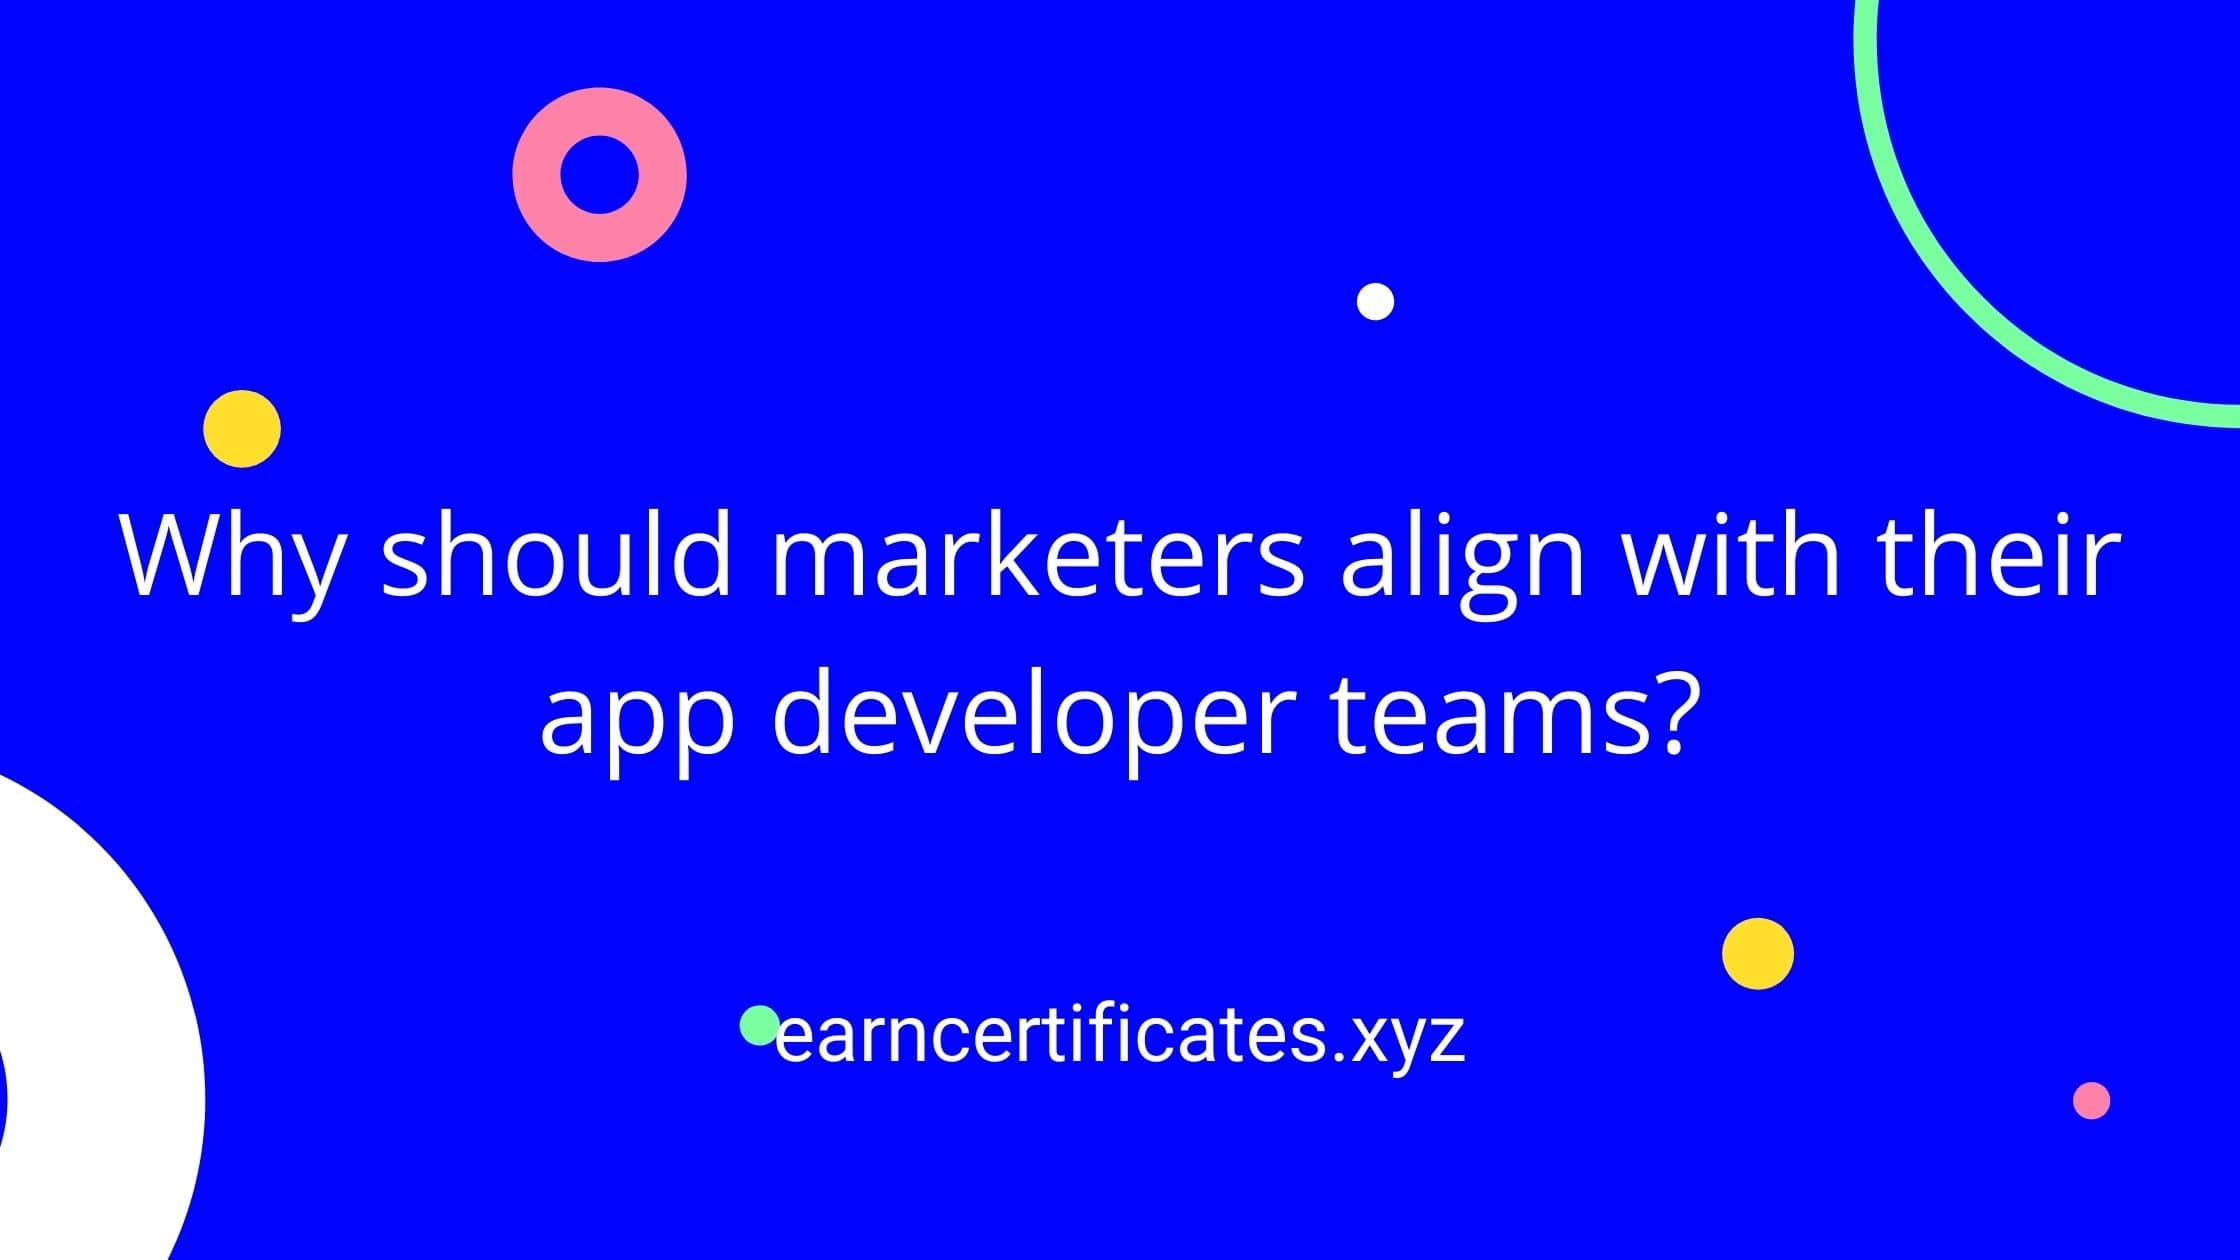 Why should marketers align with their app developer teams?